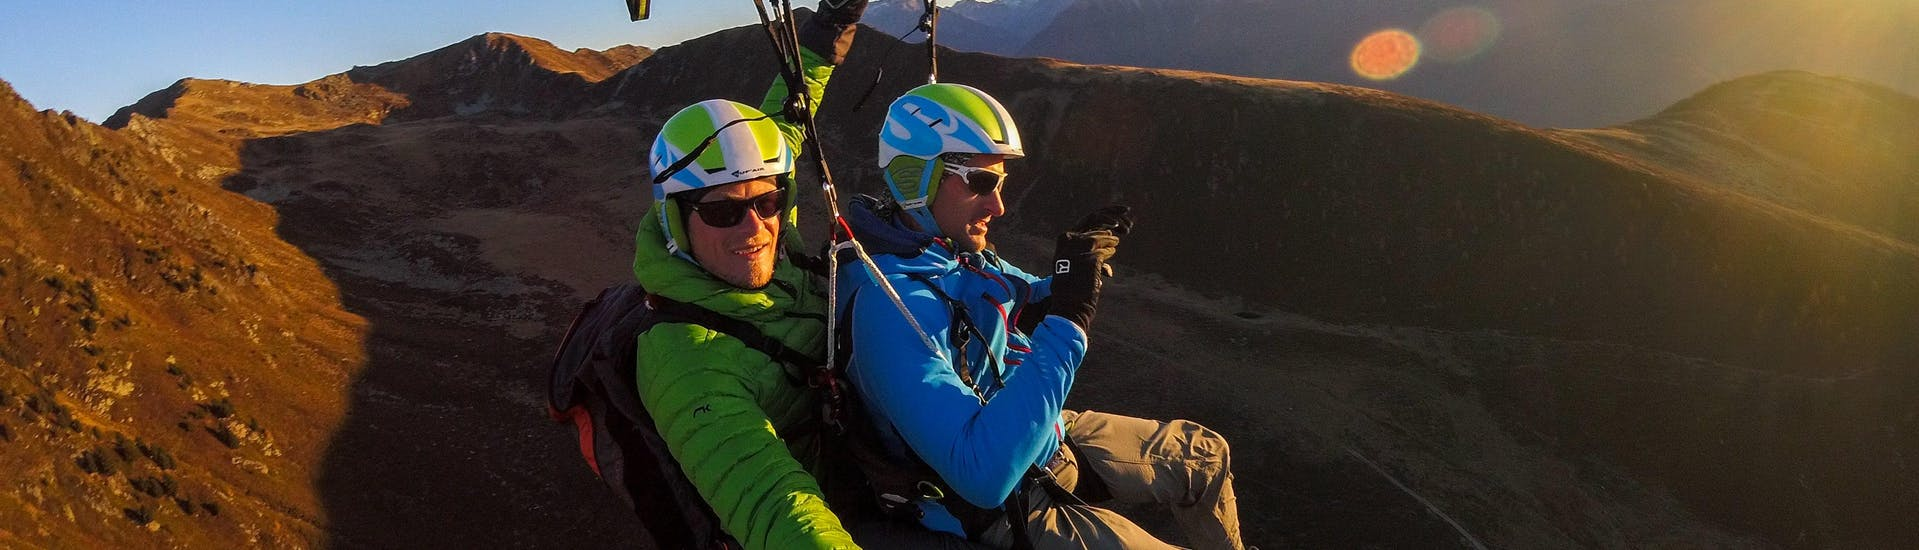 During the Tandem Paragliding from Monte Spico at Sunrise, a tandem pilot and his passenger are enjoying the calm flight in the early morning.